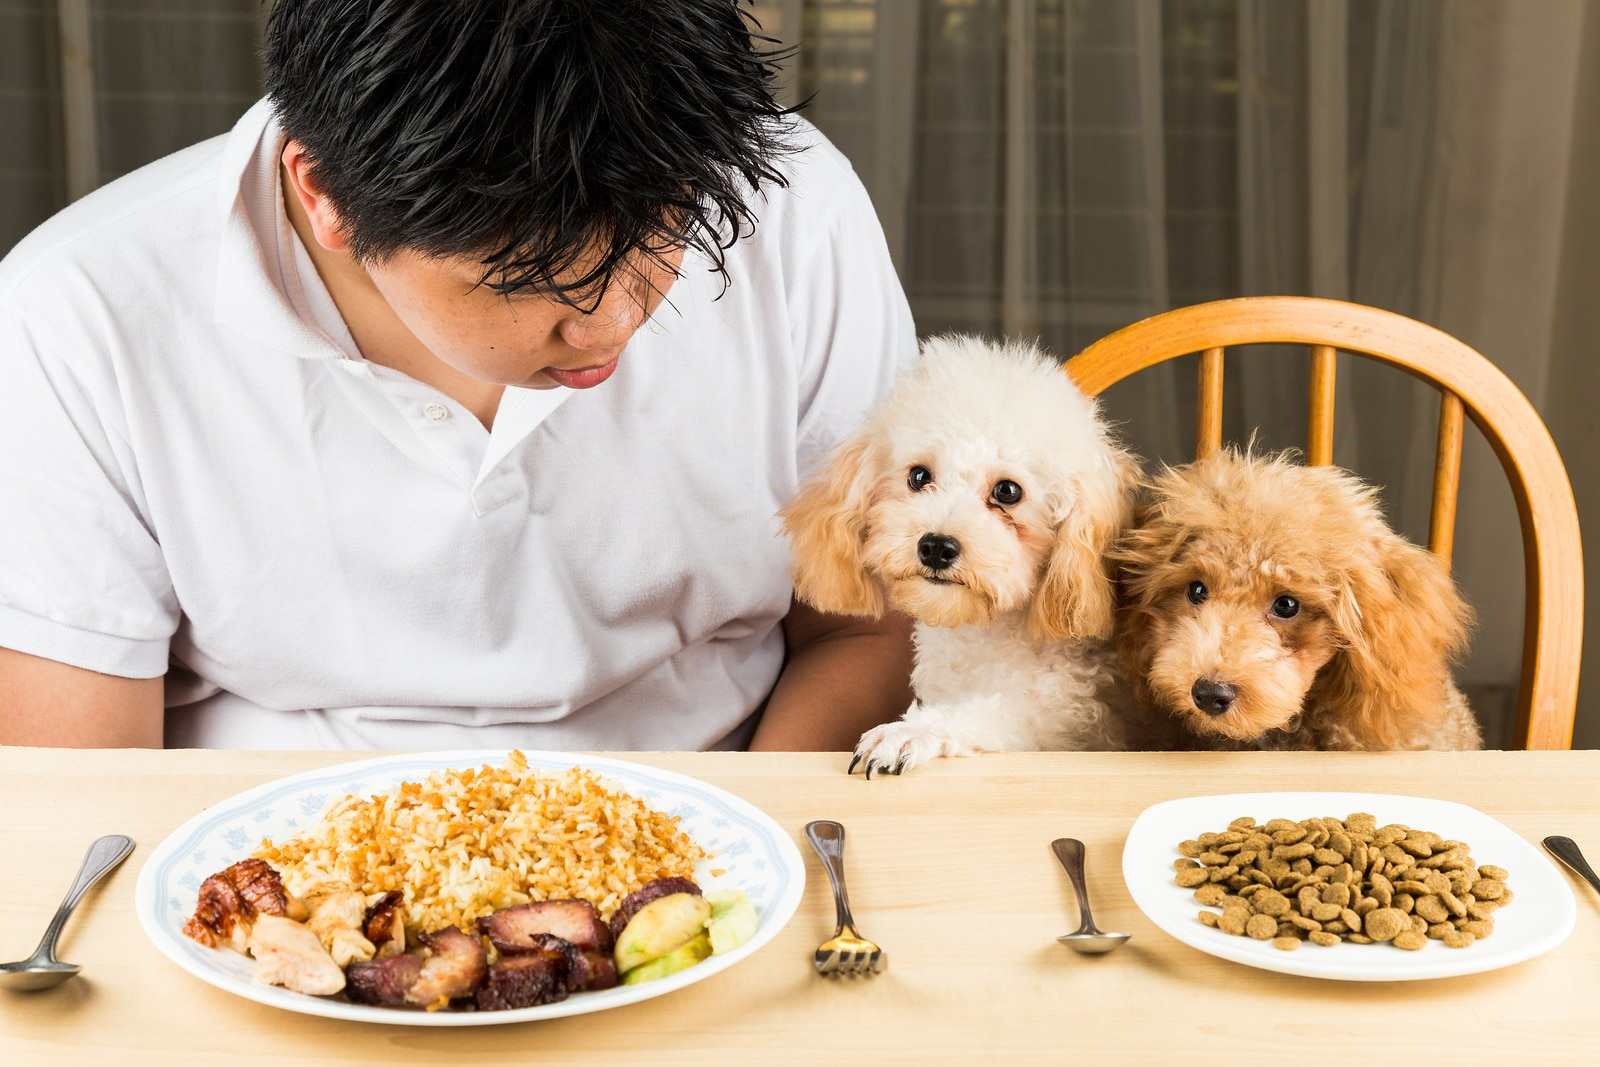 Puppies eyeing the plate of rice and meat on a teenager